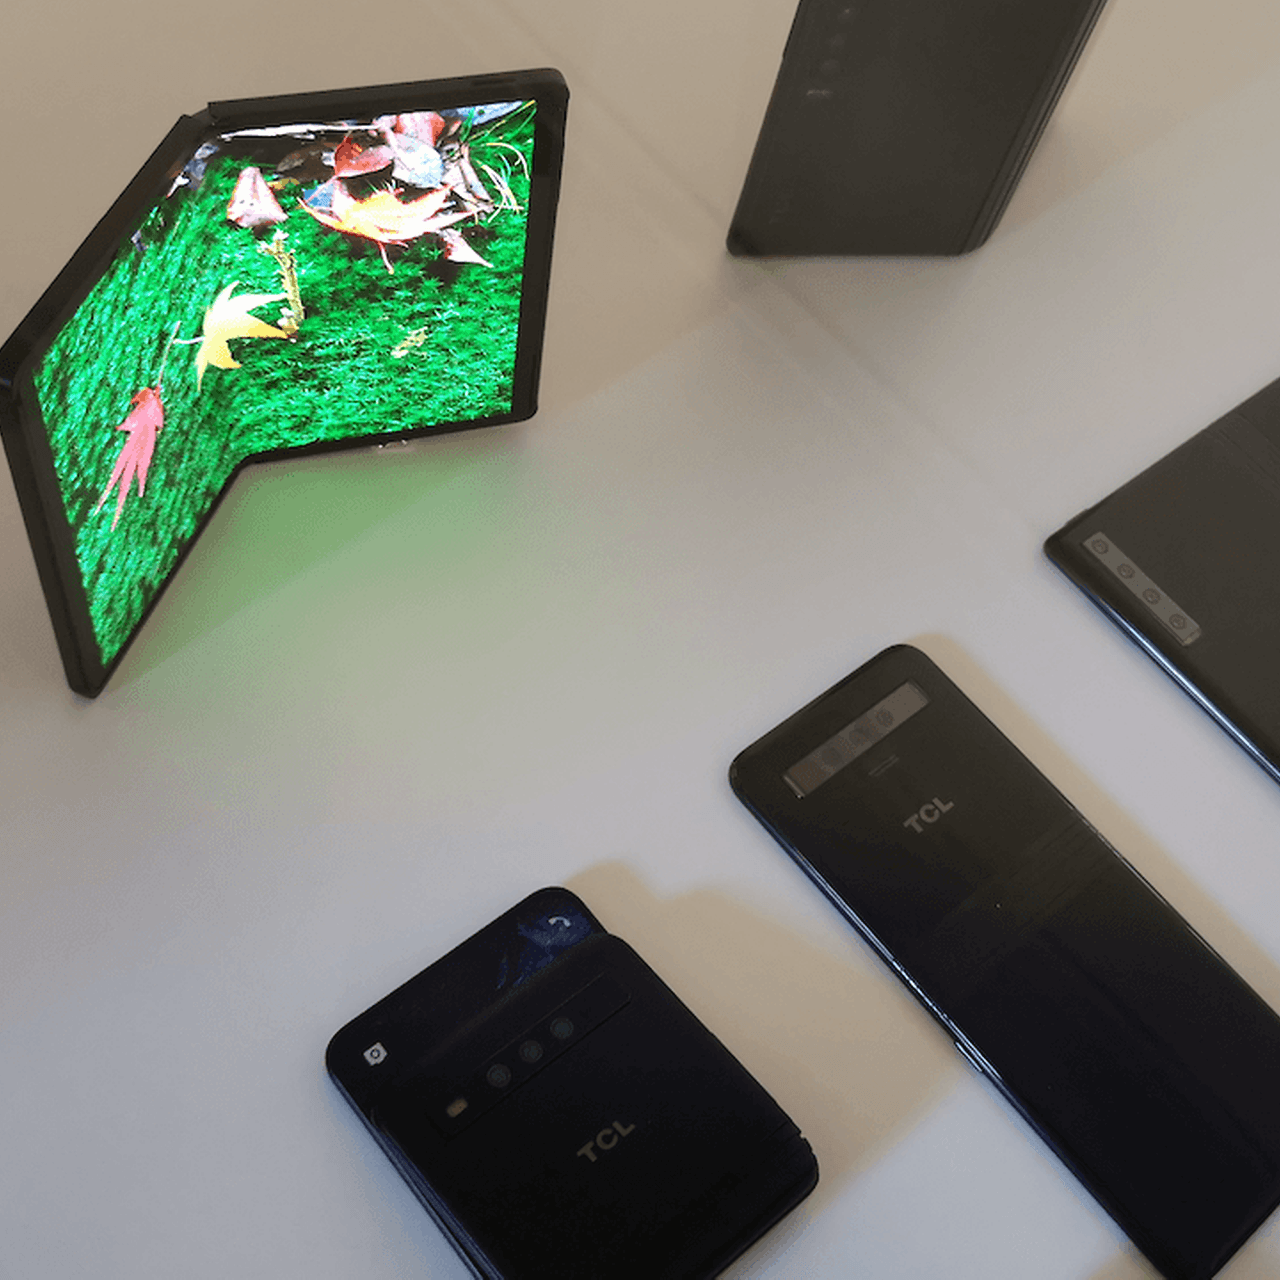 TCL (Alcatel-BlackBerry) is also switching to foldable smartphones